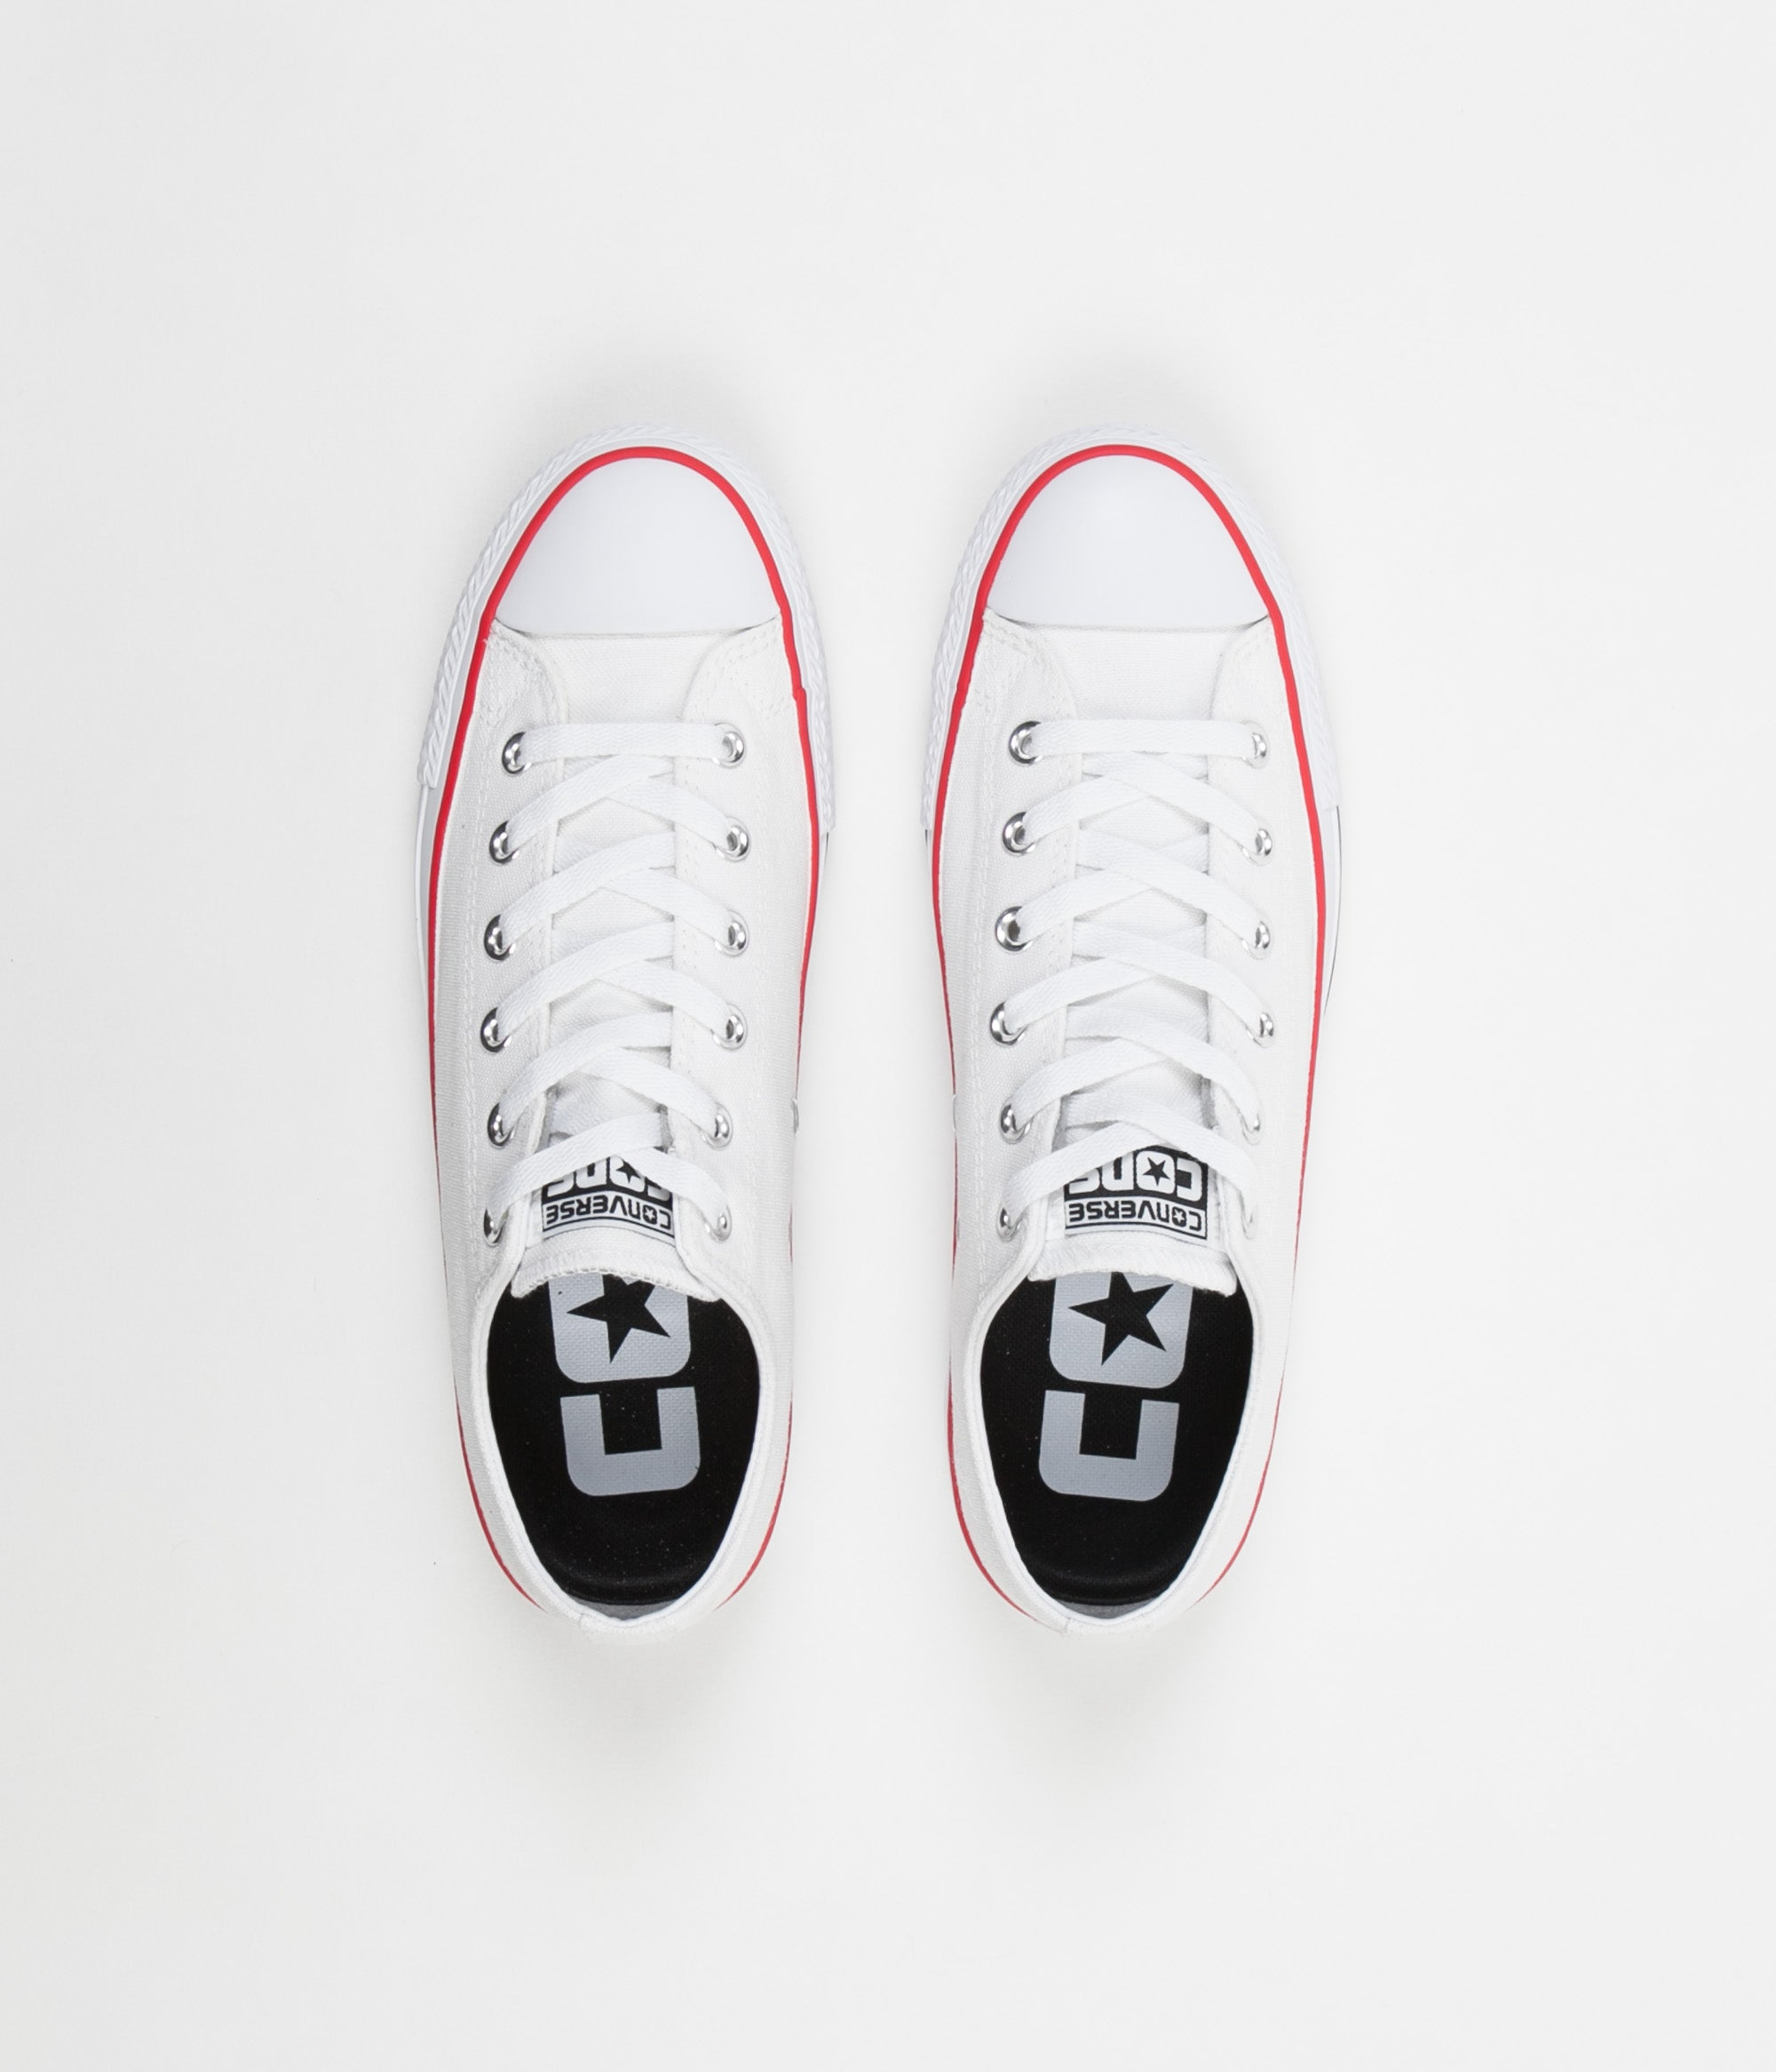 dfa34df1bca95f Converse CTAS Pro Ox Shoes - White   Red   Insignia Blue ...